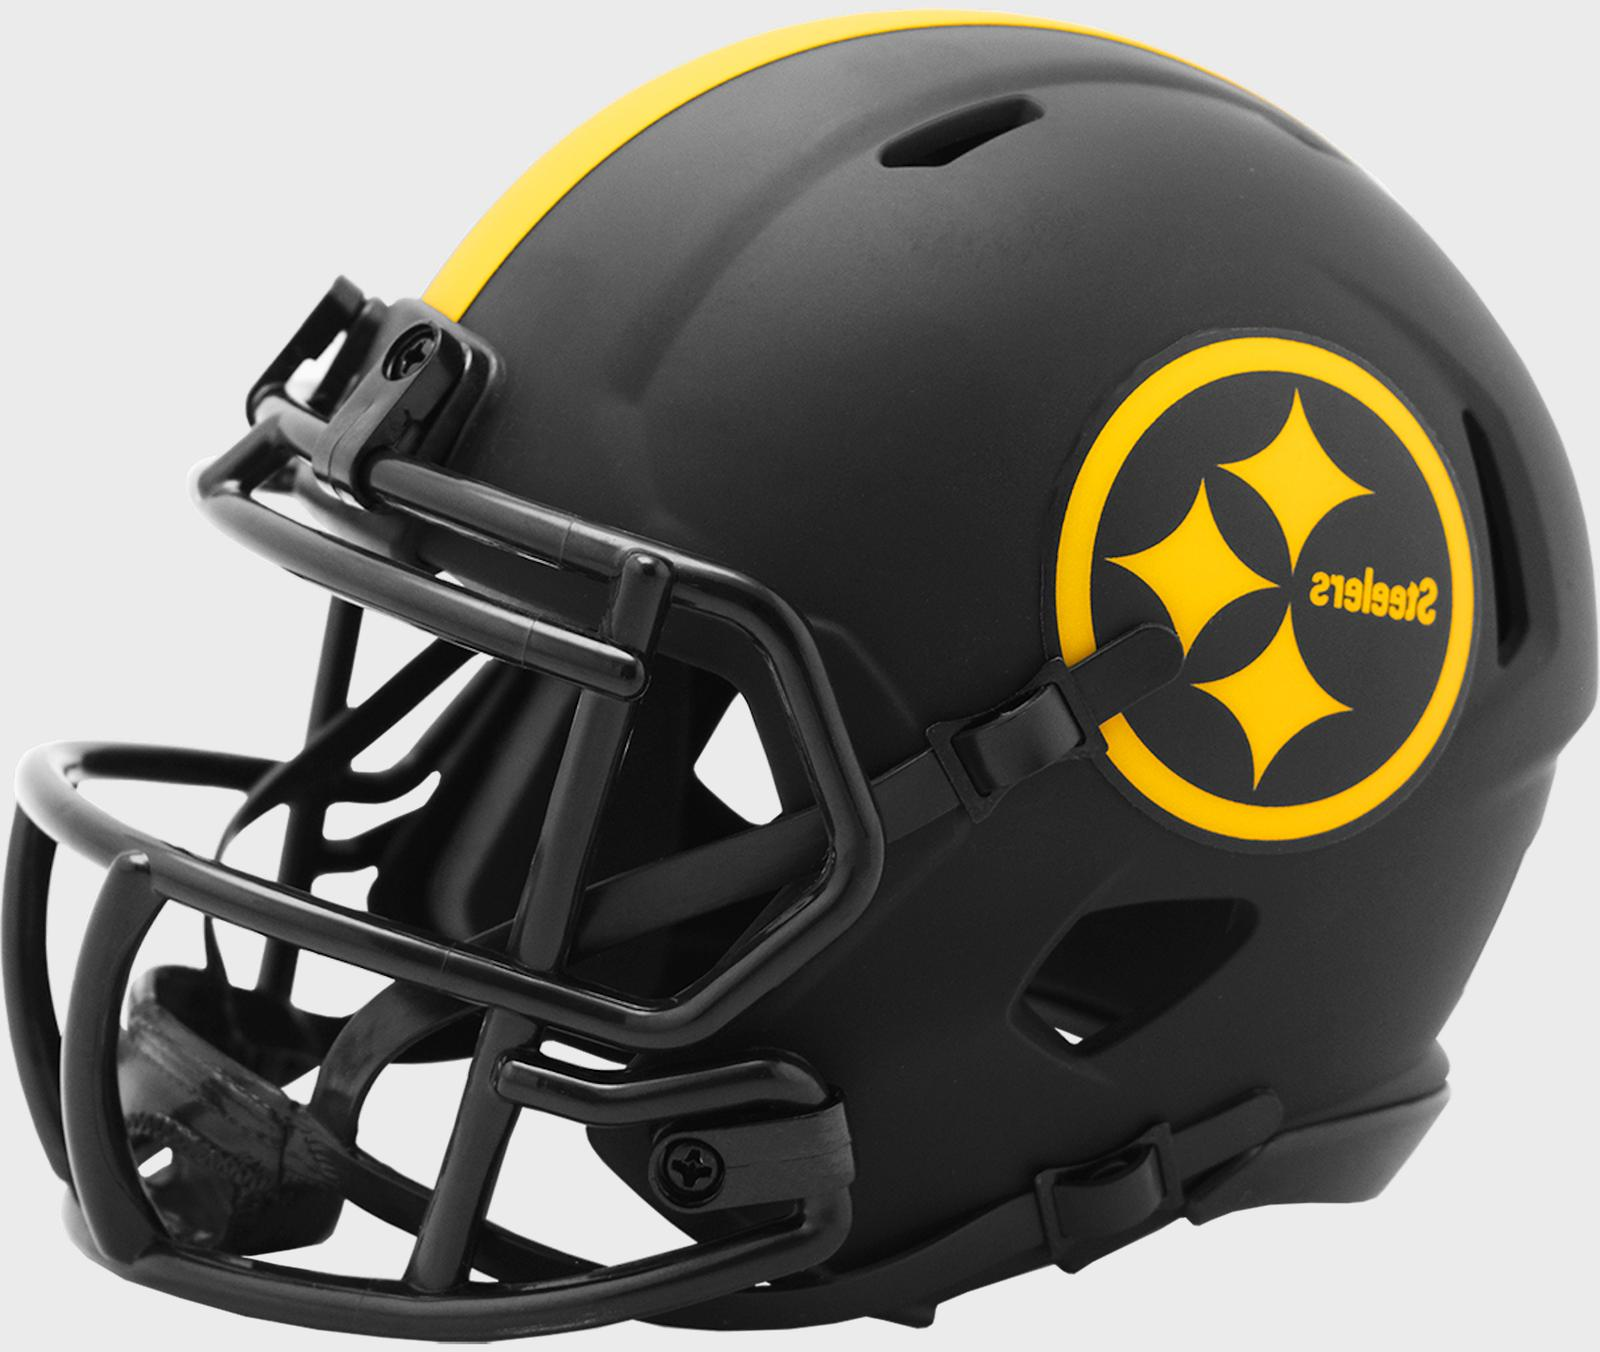 PITTSBURGH STEELERS NFL Riddell SPEED Mini Football Helmet B